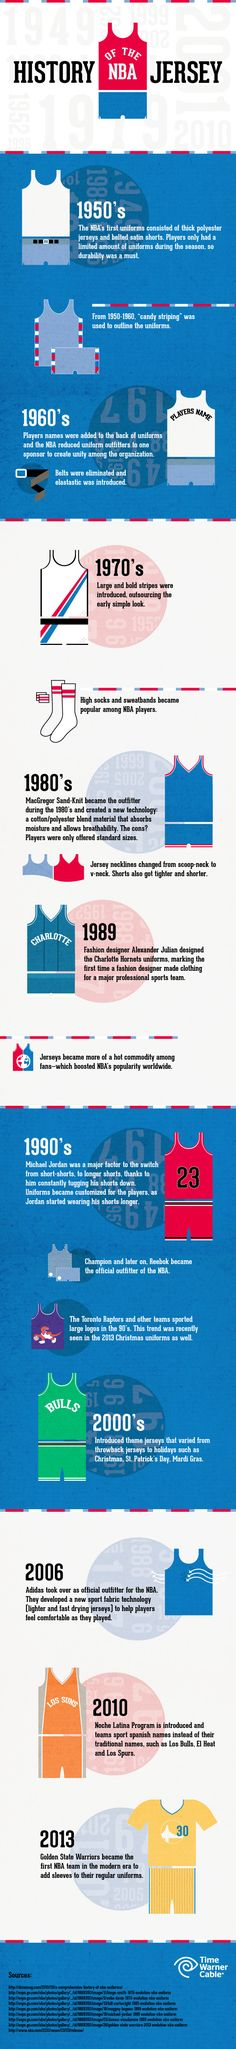 History of the NBA Jersey #infographic #NBA #Sports #History